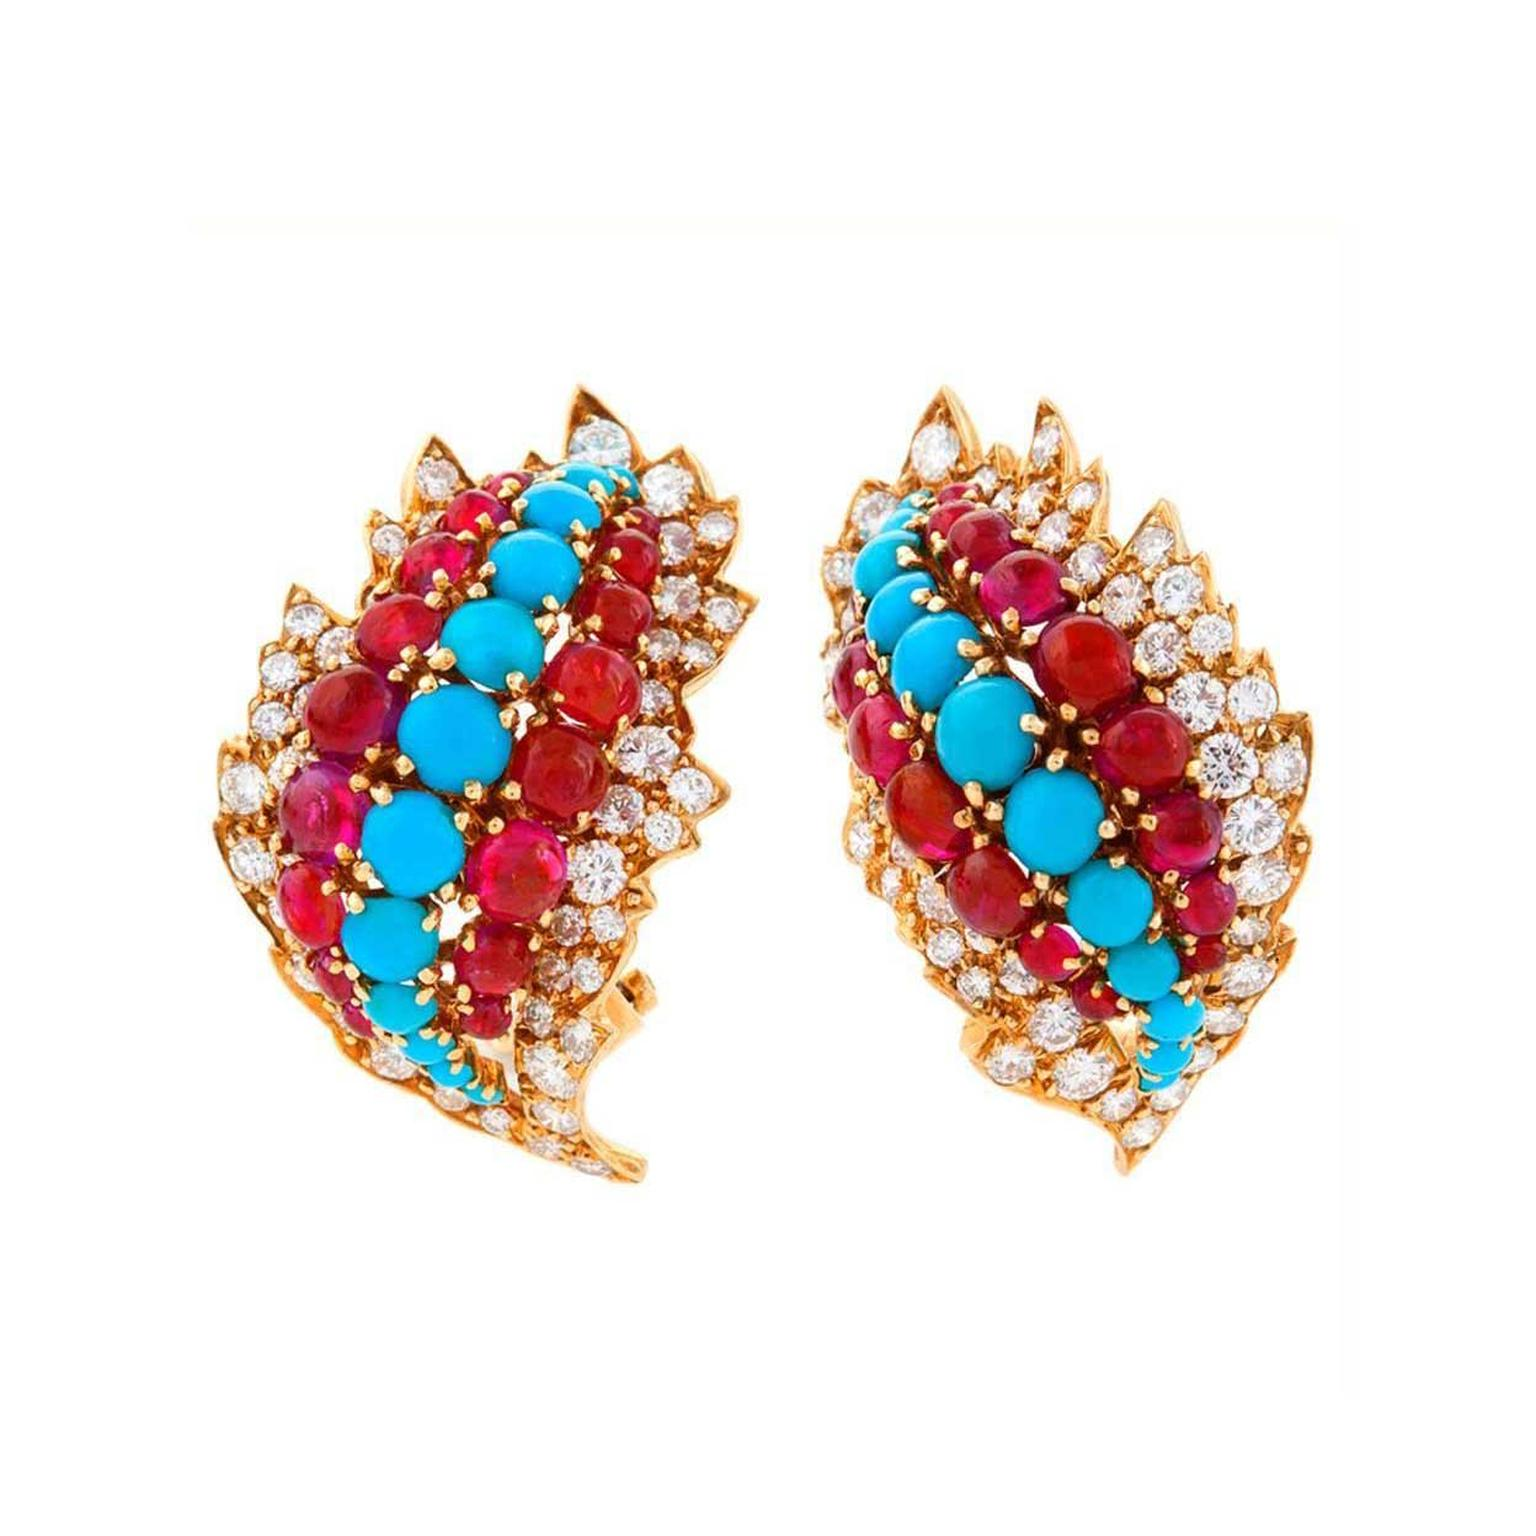 Macklowe Gallery American Mid 20th Century gold earclips diamonds rubies and turquoise by David Webb